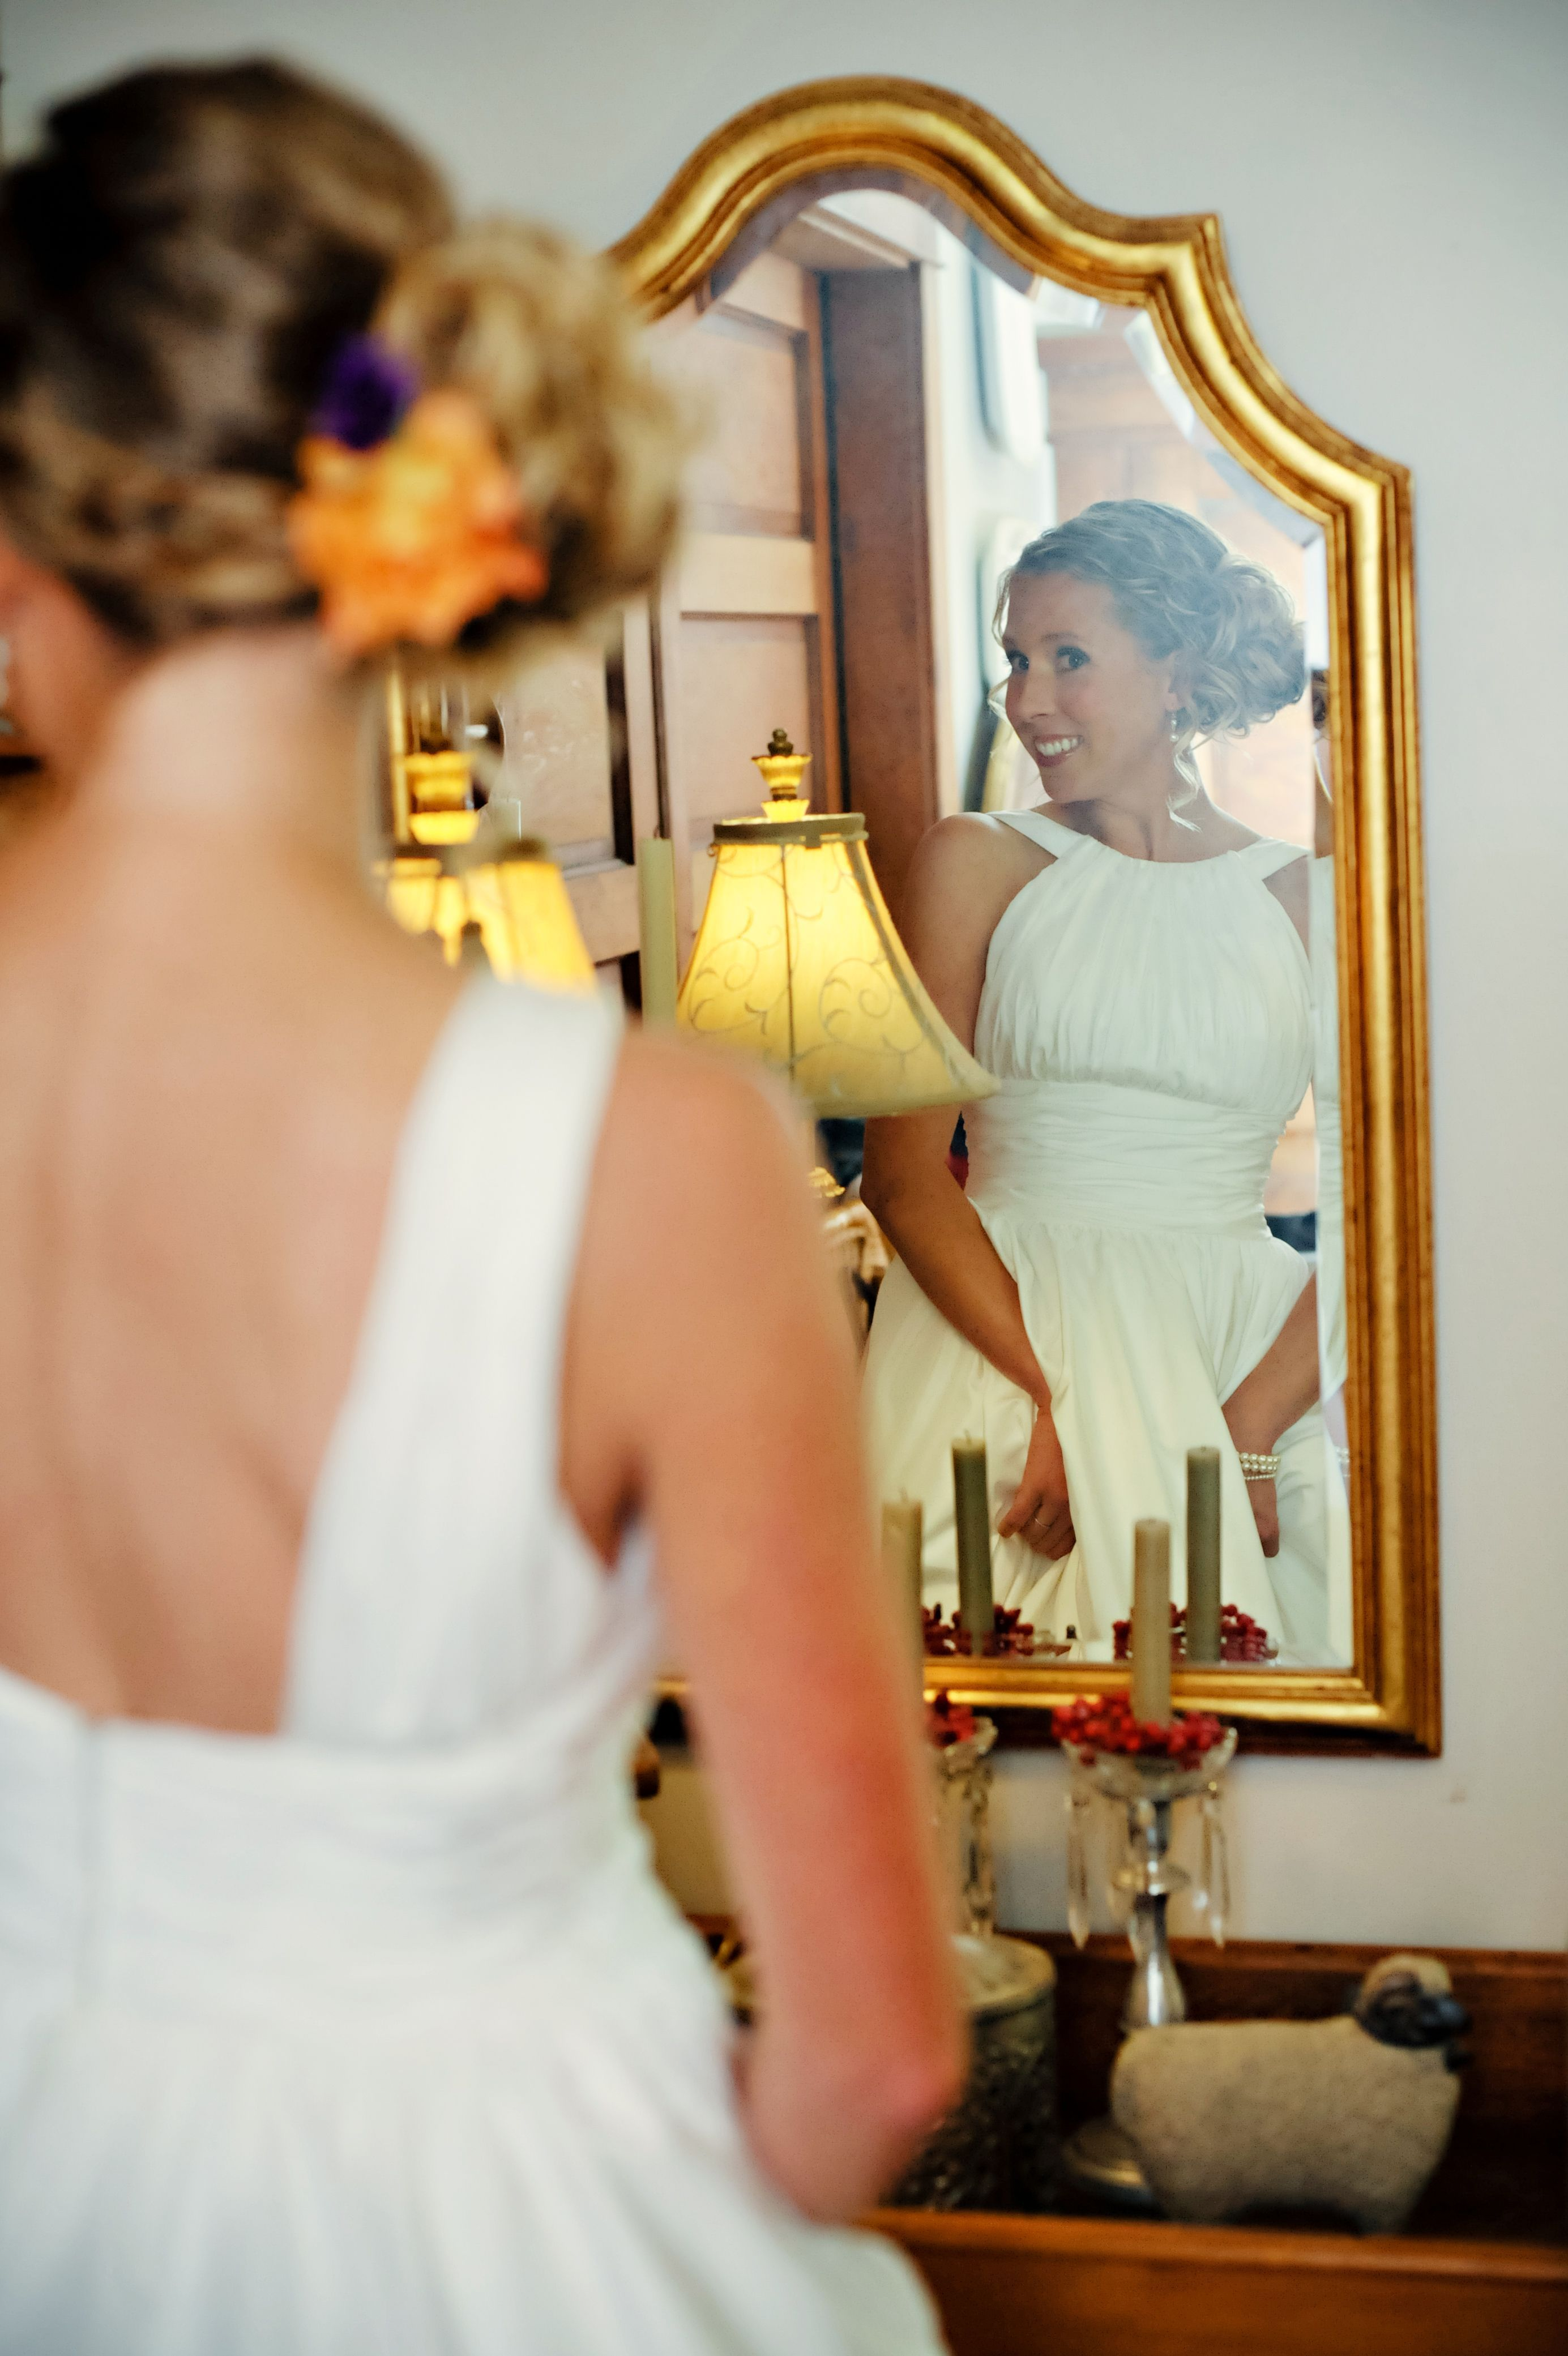 Beautiful mirror shot showing low side bun with real flowers #lowsidebuns Beautiful mirror shot showing low side bun with real flowers #lowsidebuns Beautiful mirror shot showing low side bun with real flowers #lowsidebuns Beautiful mirror shot showing low side bun with real flowers #weddingsidebuns Beautiful mirror shot showing low side bun with real flowers #lowsidebuns Beautiful mirror shot showing low side bun with real flowers #lowsidebuns Beautiful mirror shot showing low side bun with real #weddingsidebuns